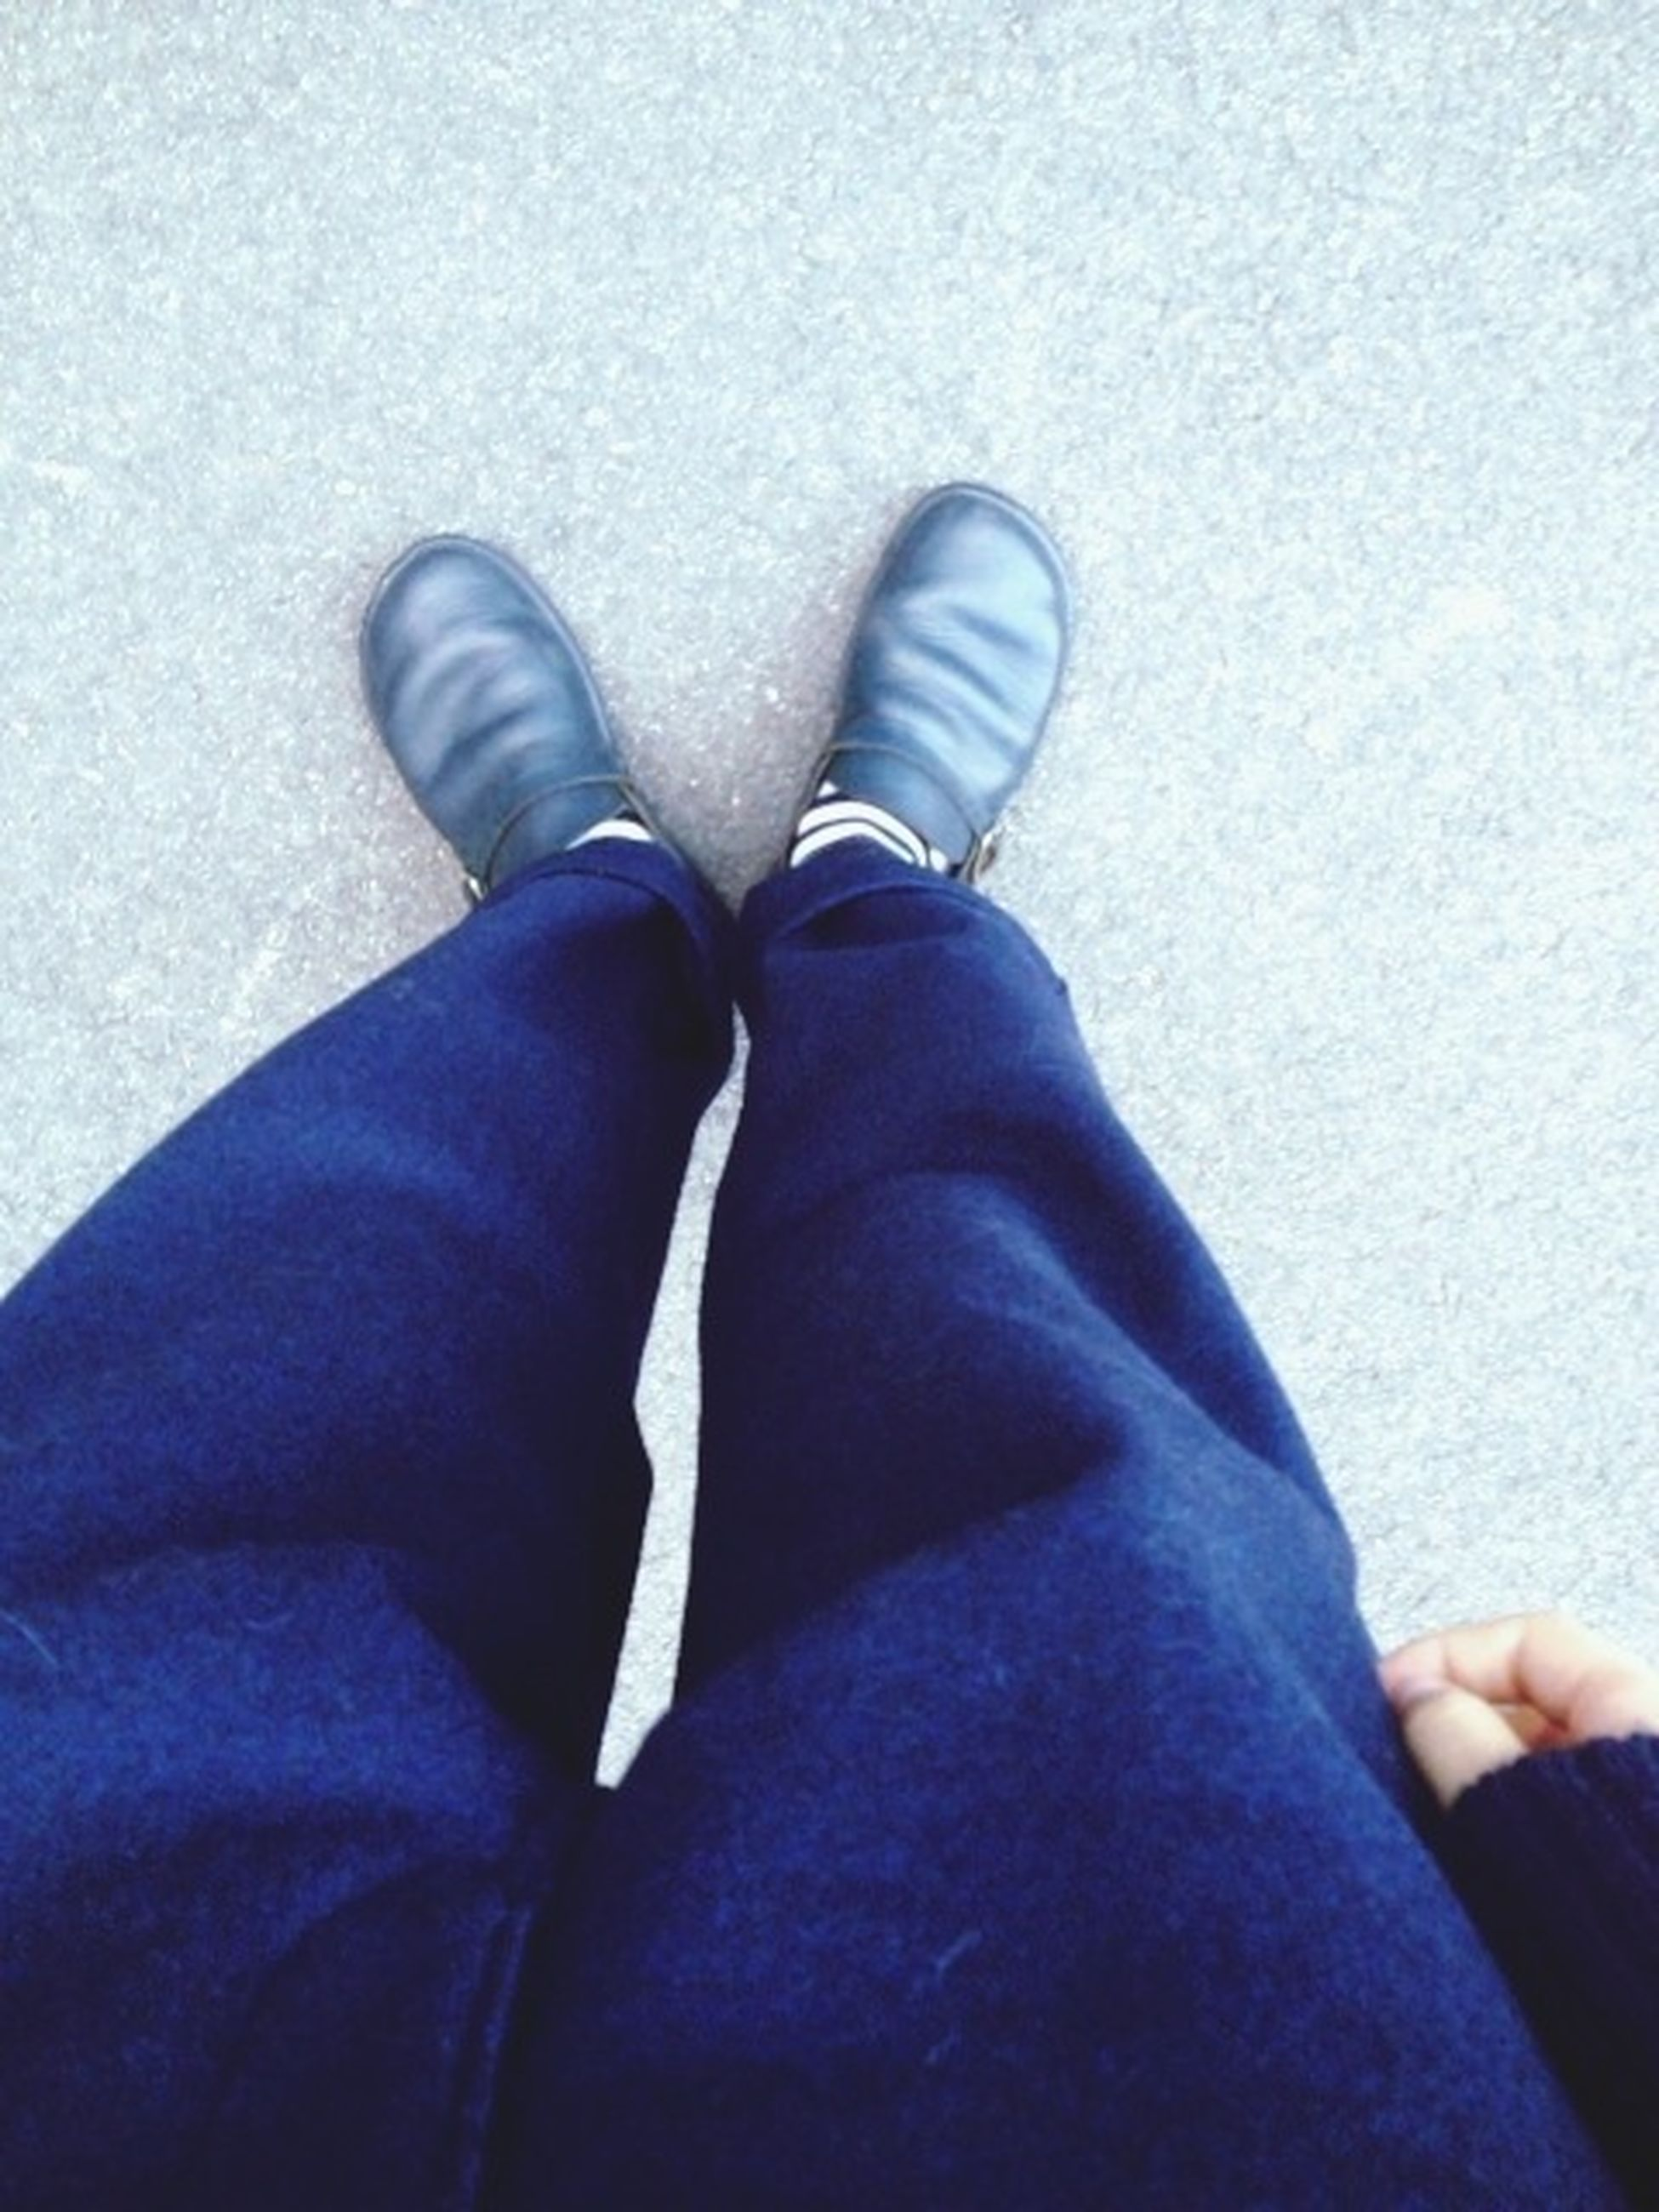 low section, person, jeans, personal perspective, shoe, lifestyles, casual clothing, human foot, standing, relaxation, high angle view, leisure activity, footwear, blue, sitting, men, legs crossed at ankle